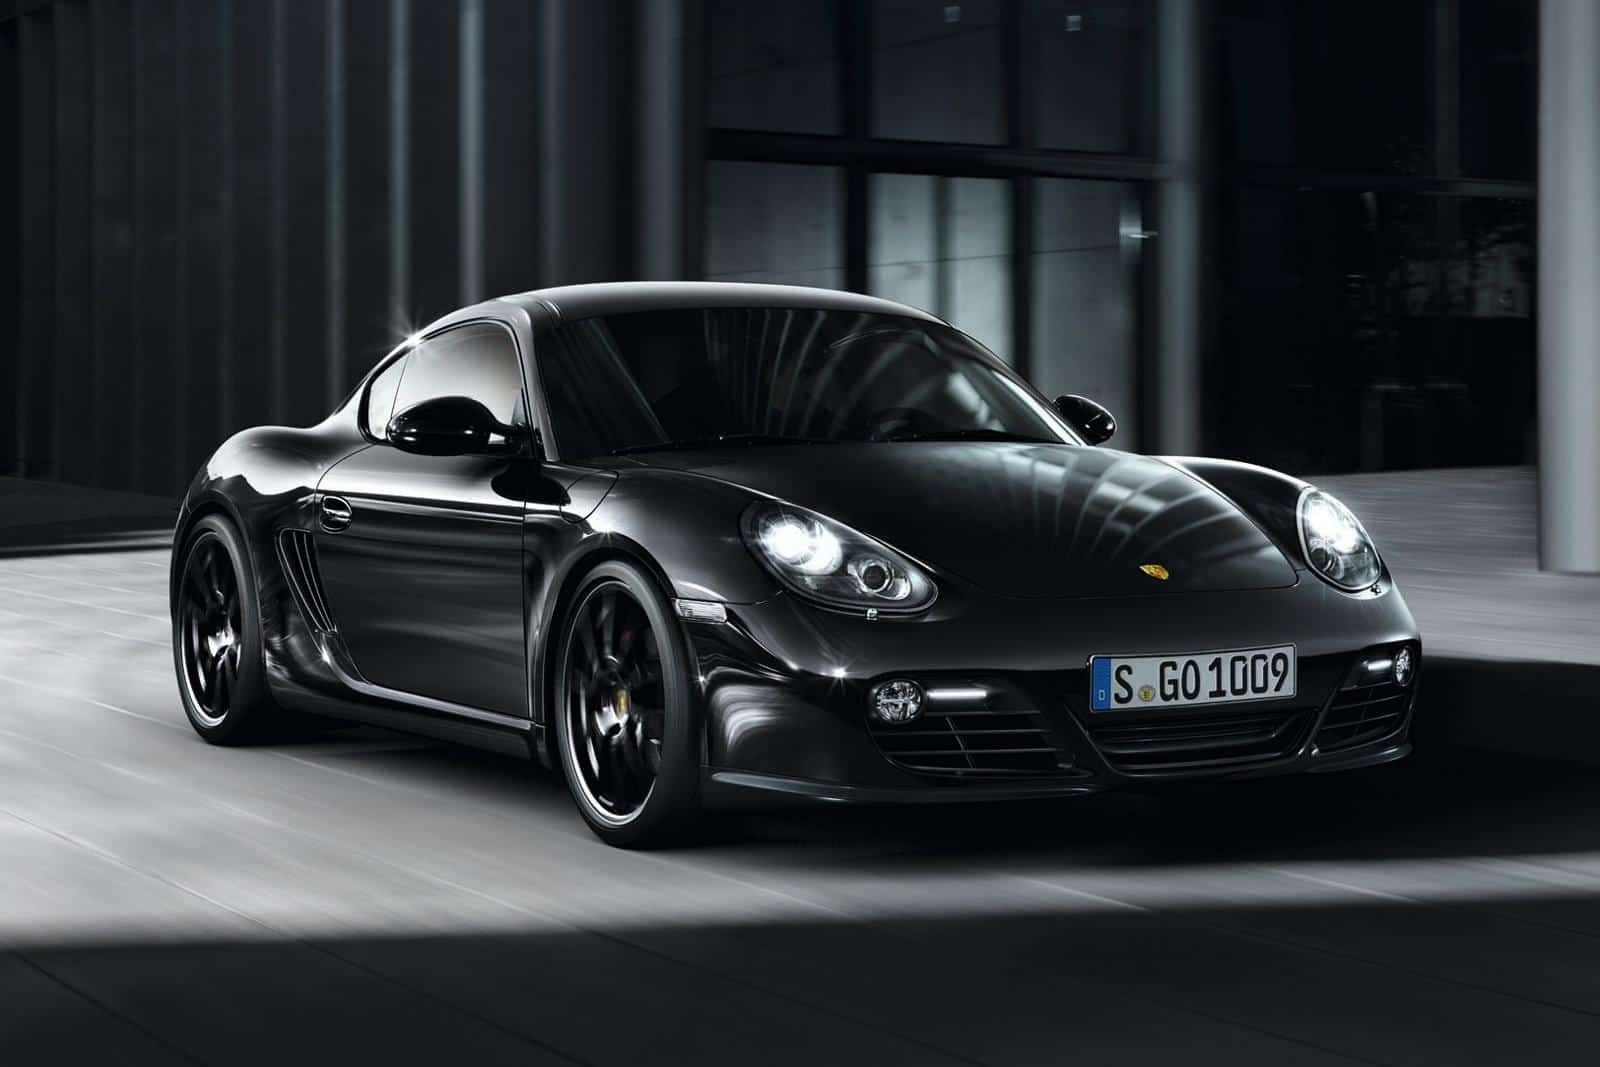 Porsche-Cayman- S-Car-Magazine--Luxury-Imports-Most-Expensive-Cars-Dream-Cars-Rich-Cars-Cool-Cars-VIP-Style-Cars-1